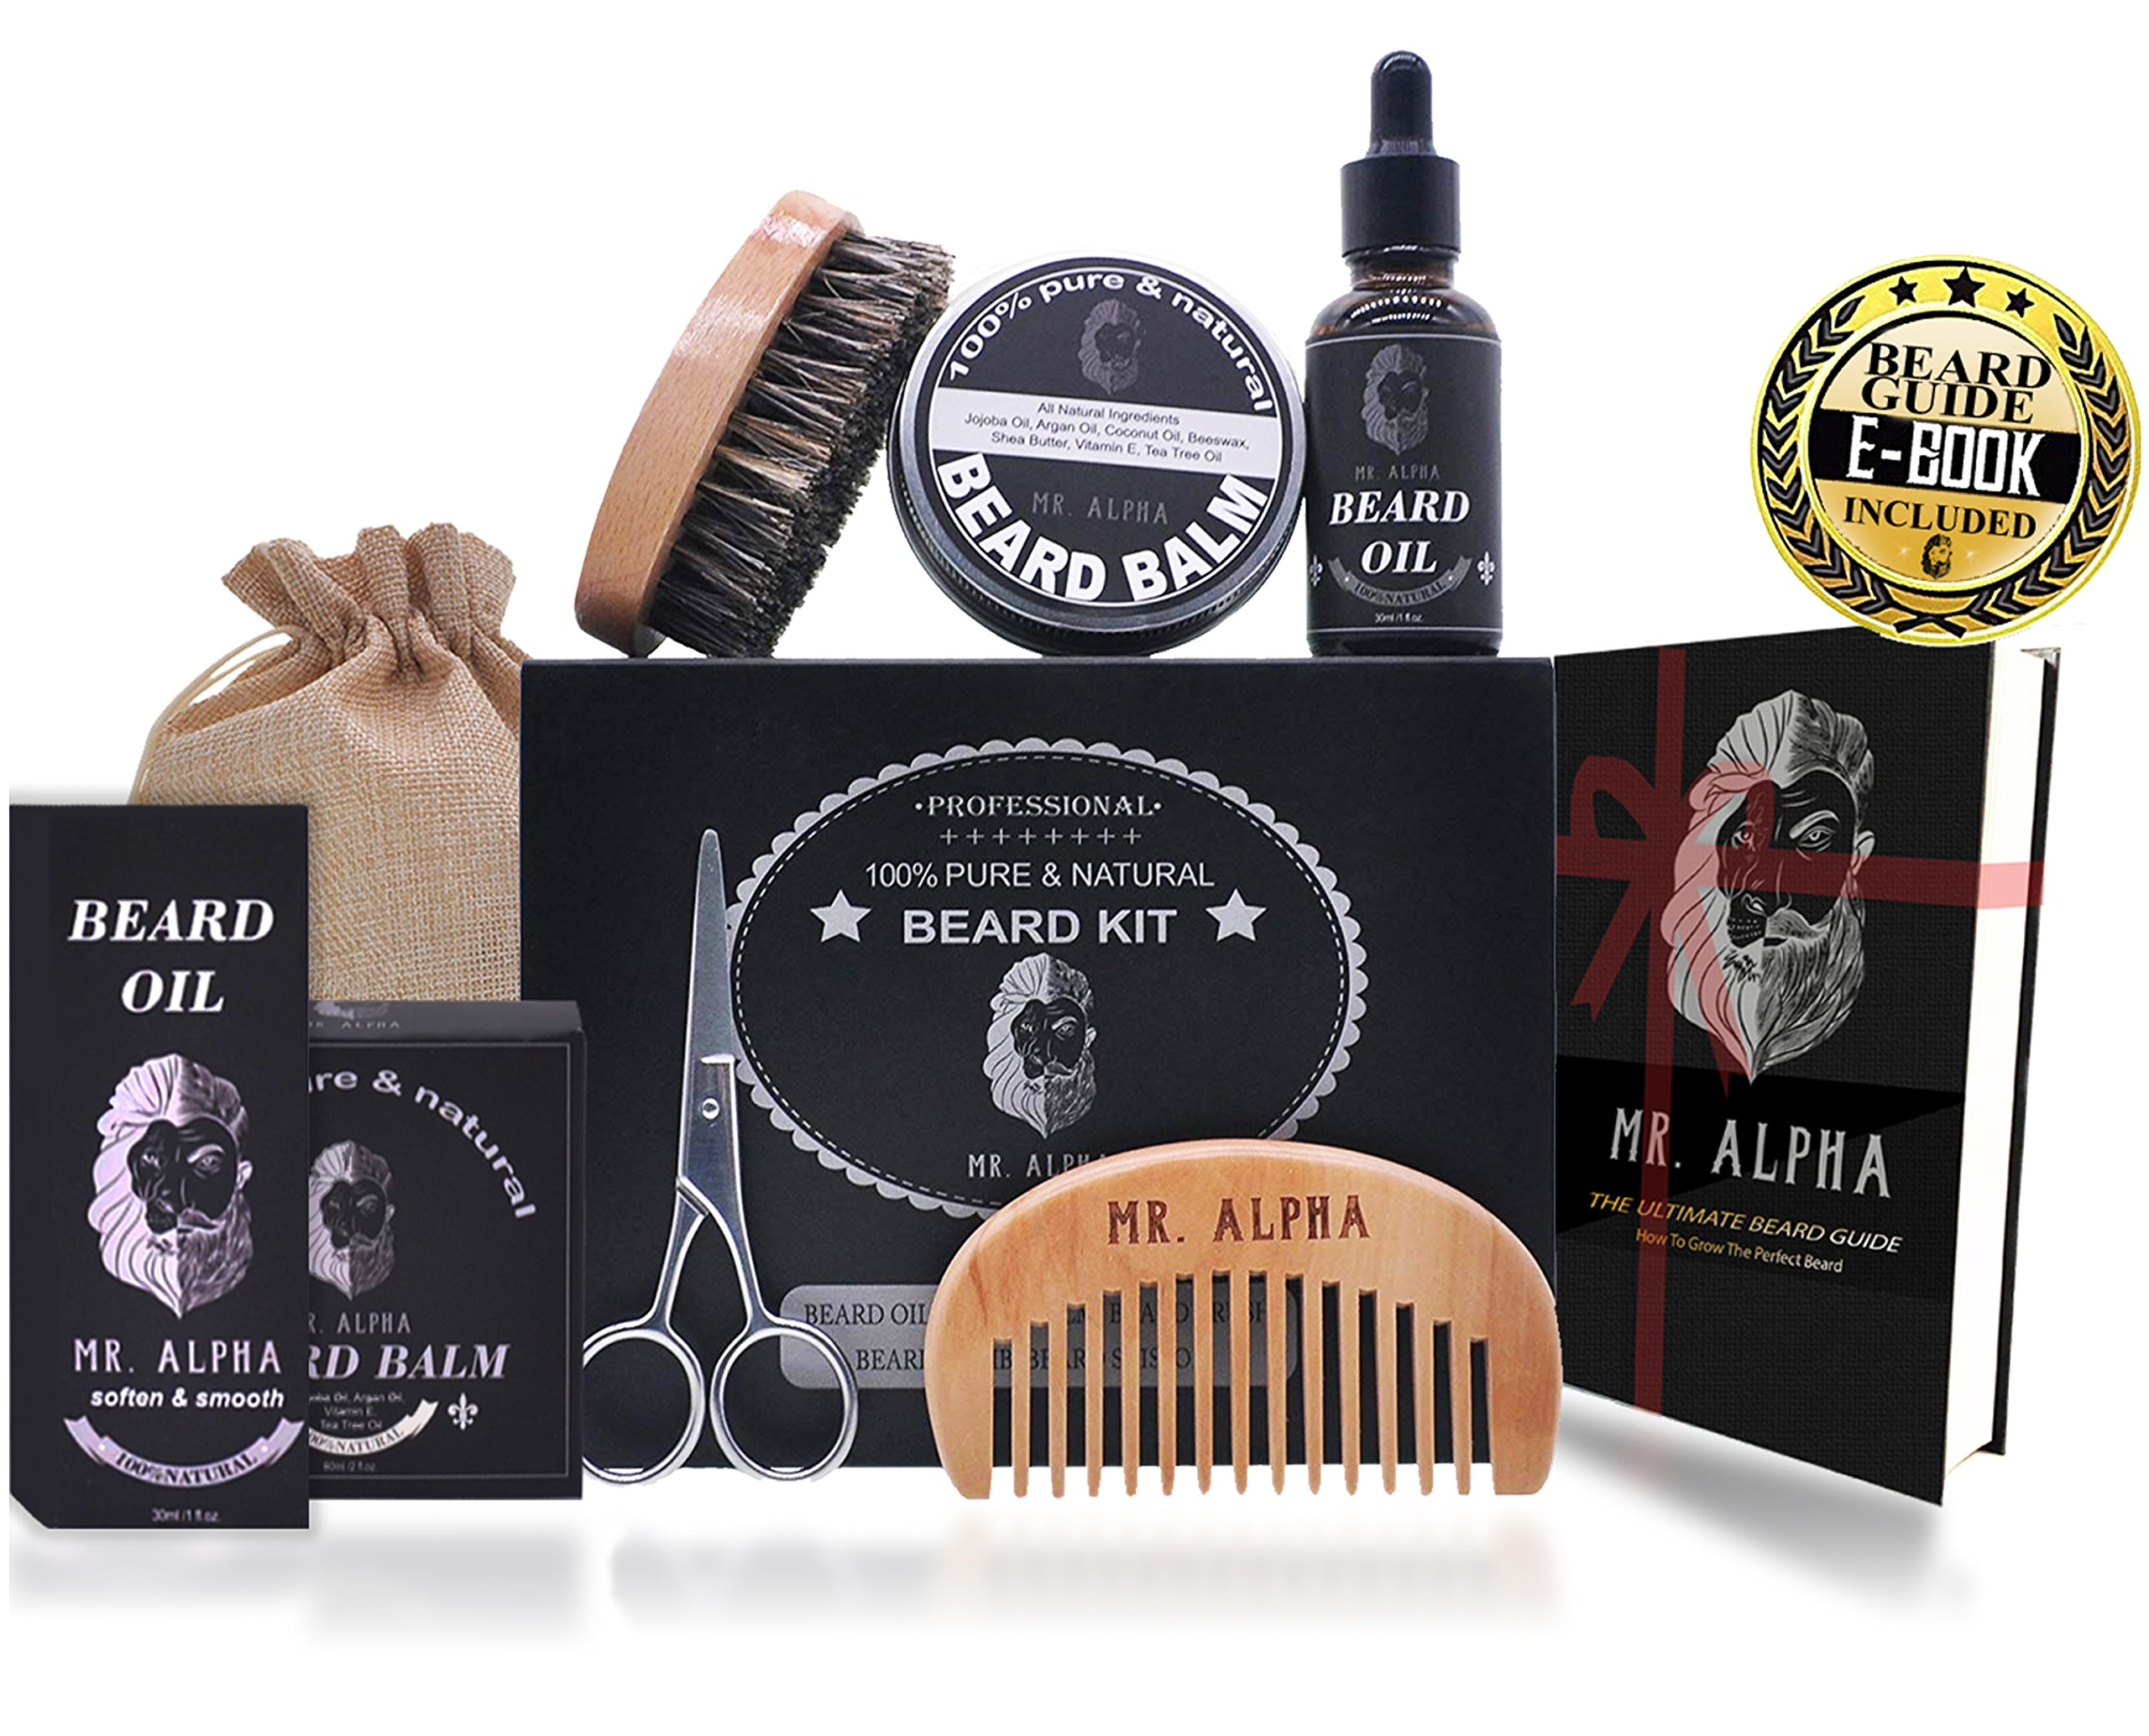 Beard Grooming Kit Gift Set for Men - Essential Facial Hair Care | Mustache Comb, Beard Brush, Styling Wax Balm, Professional Trimming Scissors, Hydrating Beard Conditioner Oil | Organic Ingredients